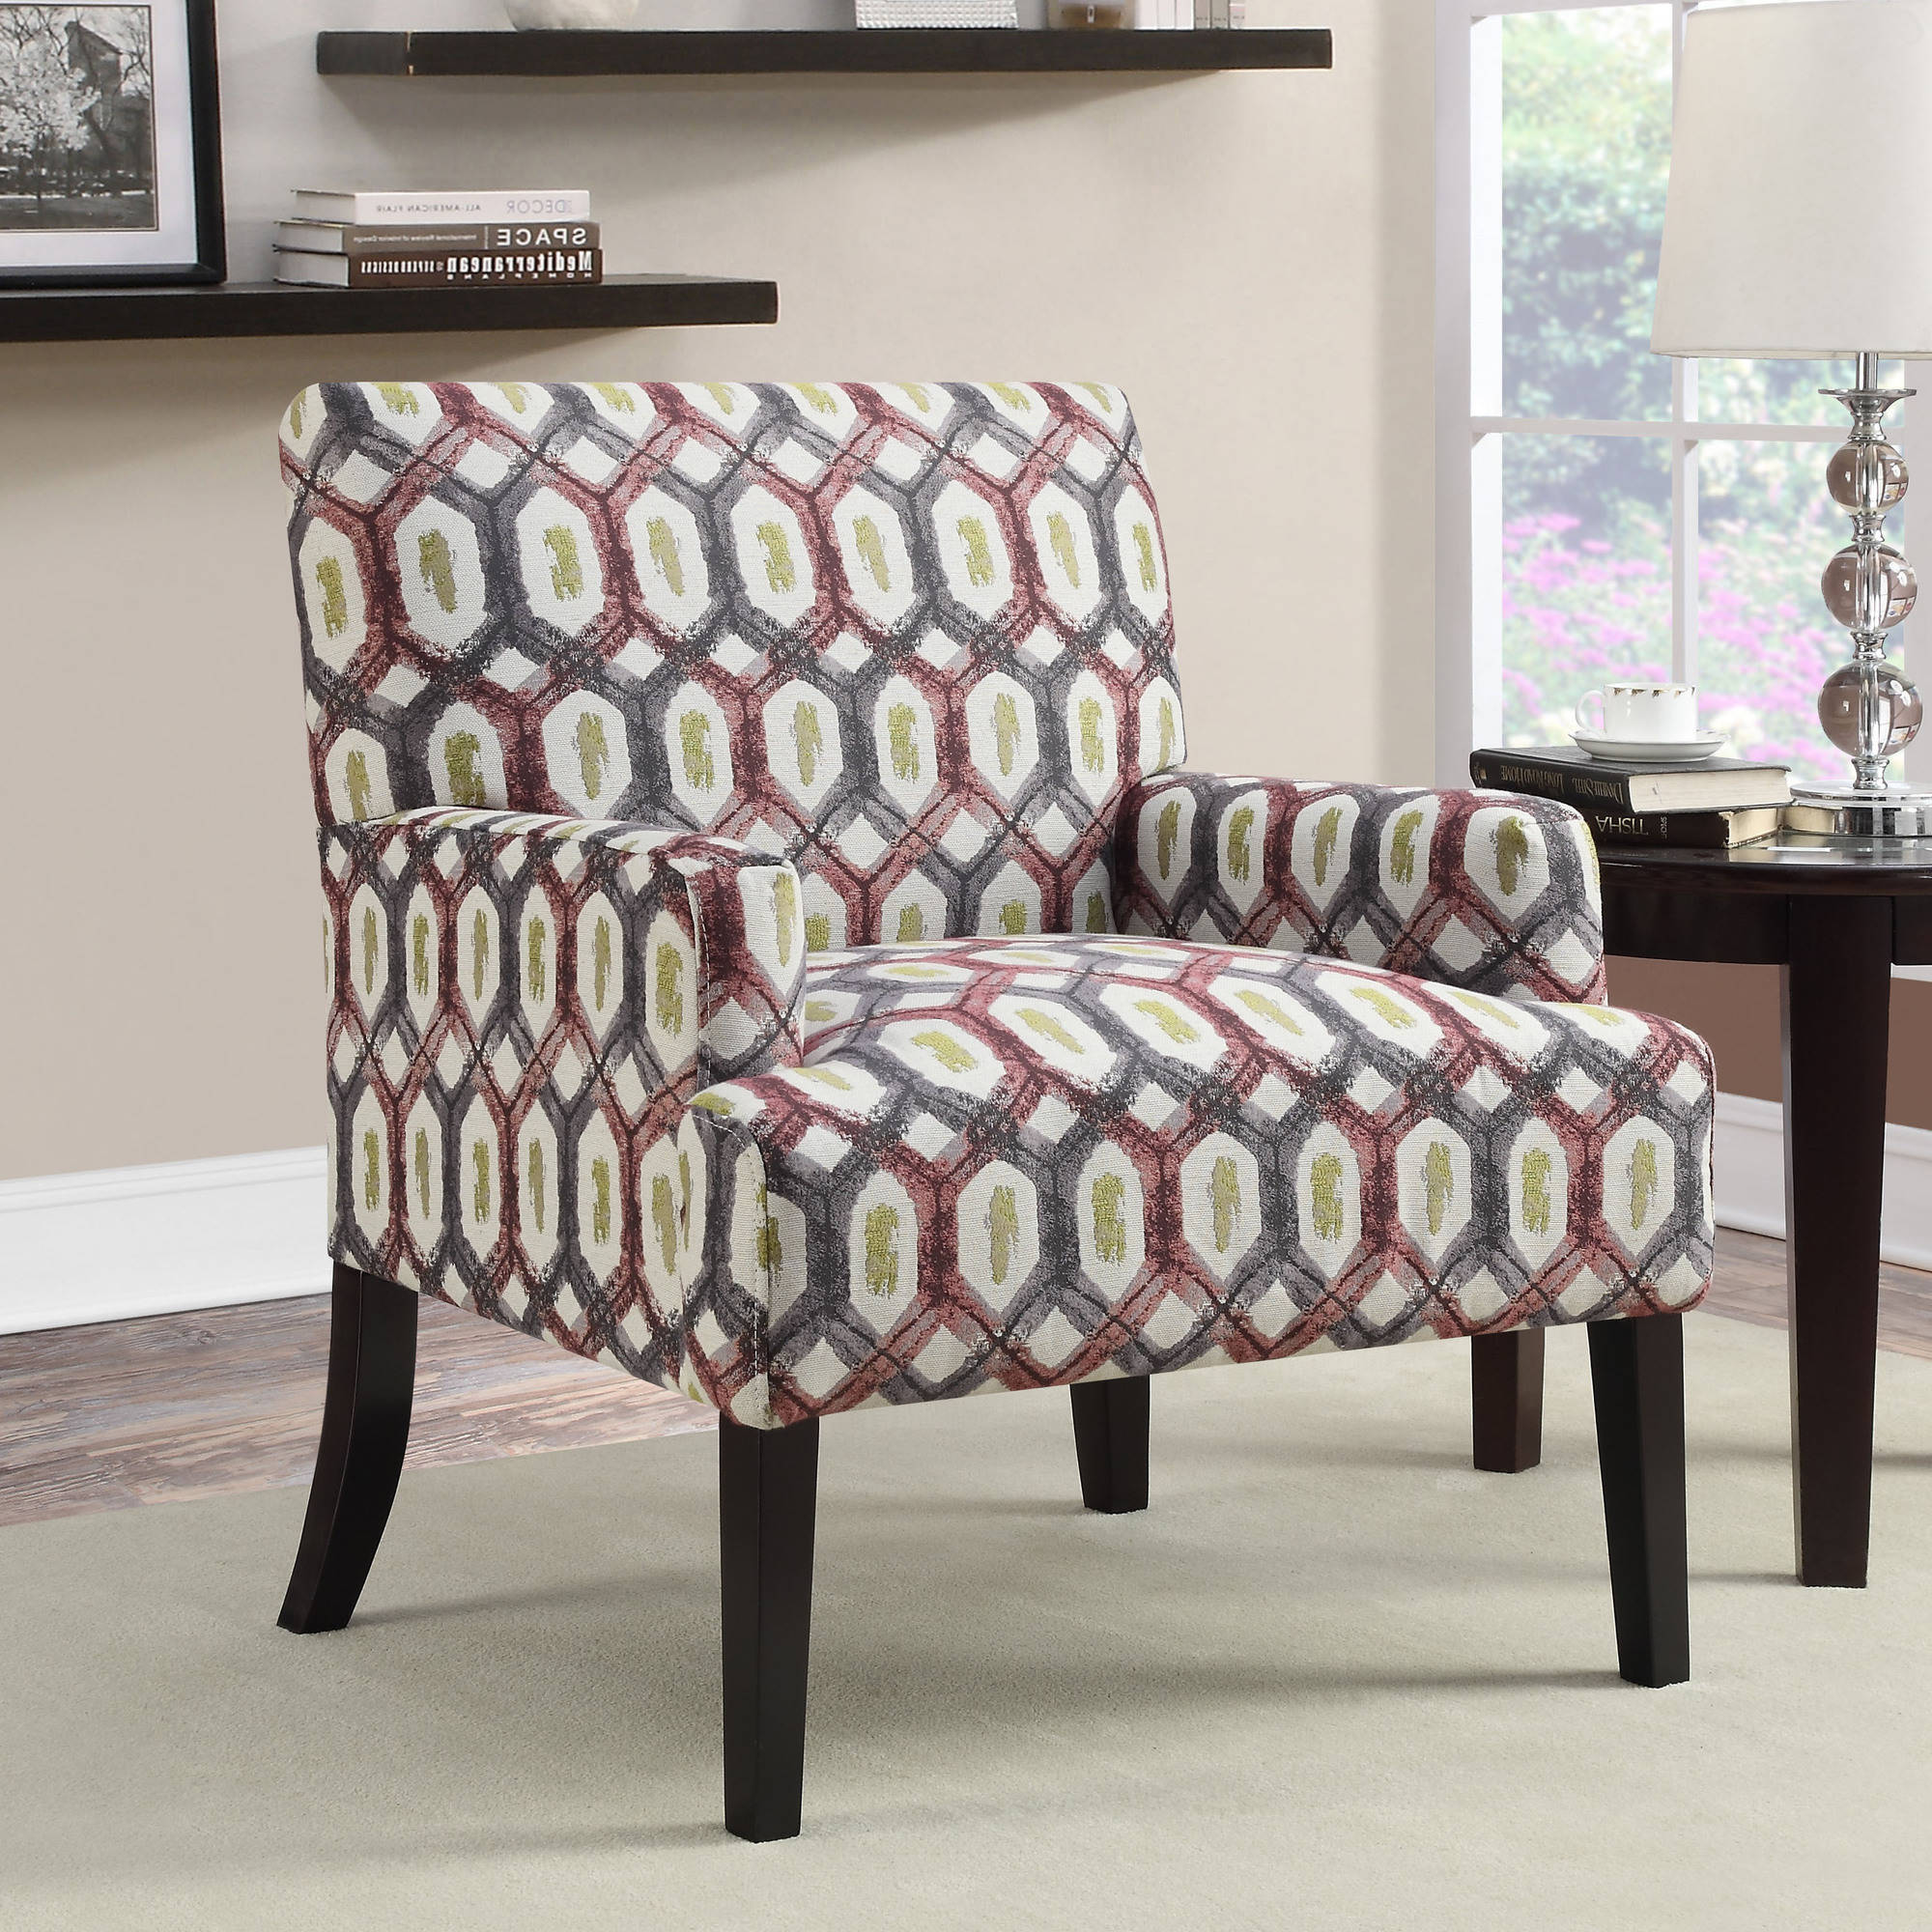 Coaster Geometric Patterned Accent Chair With Red And Grey Design